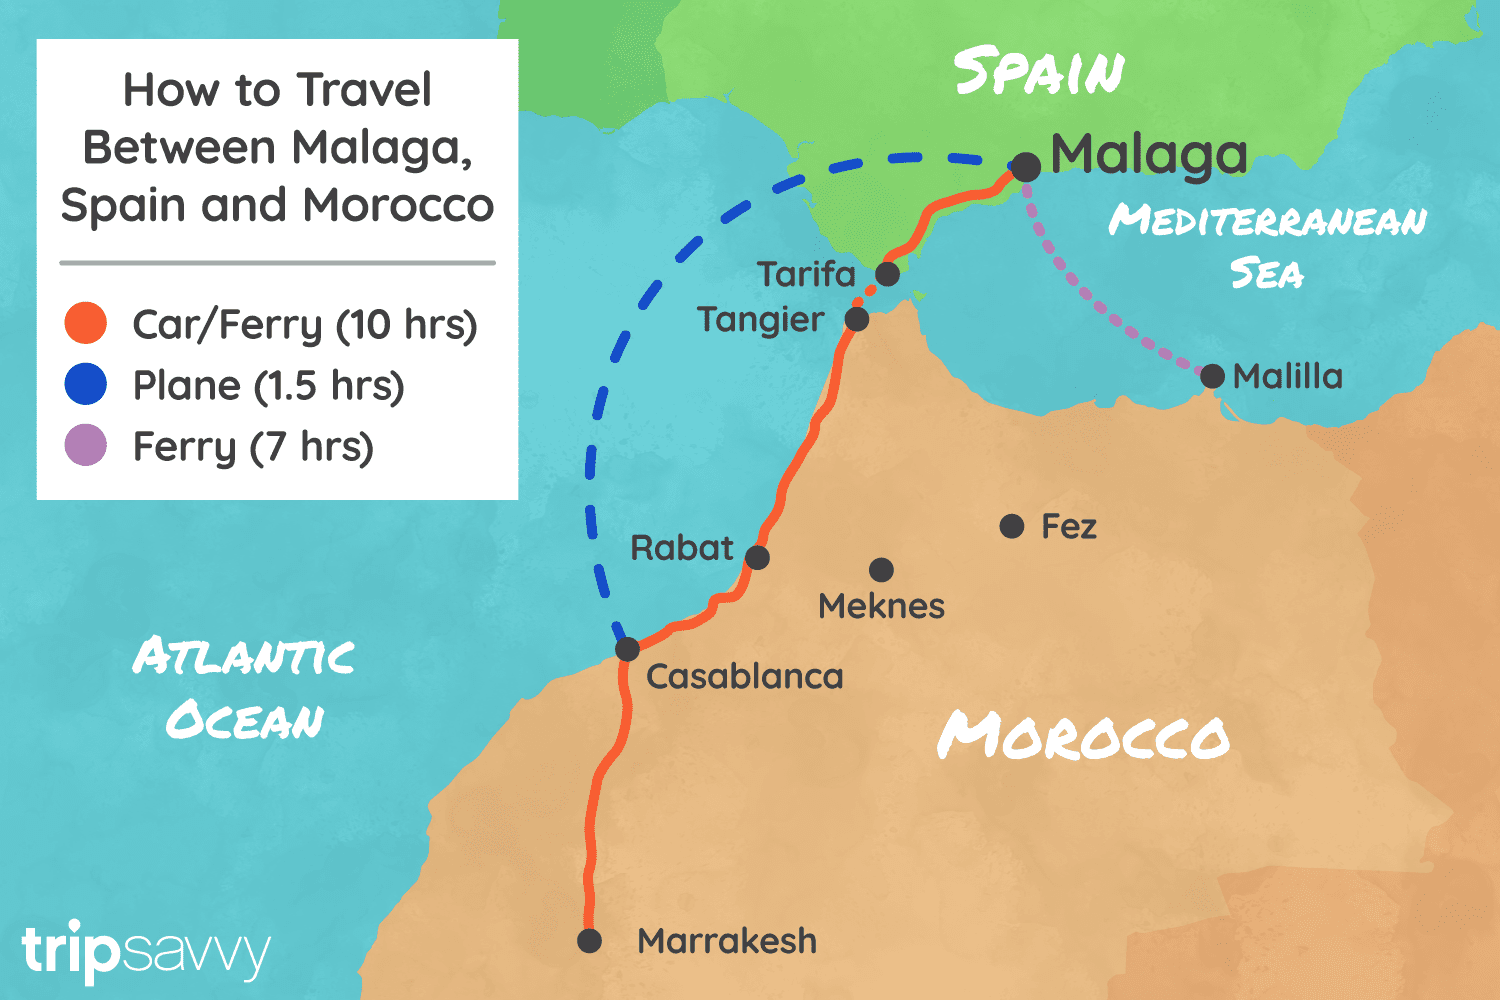 How to Get to and From Malaga and Morocco Transportation Map Of Malaga on map of andalucia, map of puerto rico gran canaria, map of iruna, map of mutare, map of sagunto, map of cudillero, map of bizkaia, map of getxo, map of tampere, map of macapa, map of marsala, map of mount ephraim, map of costa de la luz, map of italica, map of soria, map of isla margarita, map of monchengladbach, map of venice marco polo, map of penedes, map of graysville,